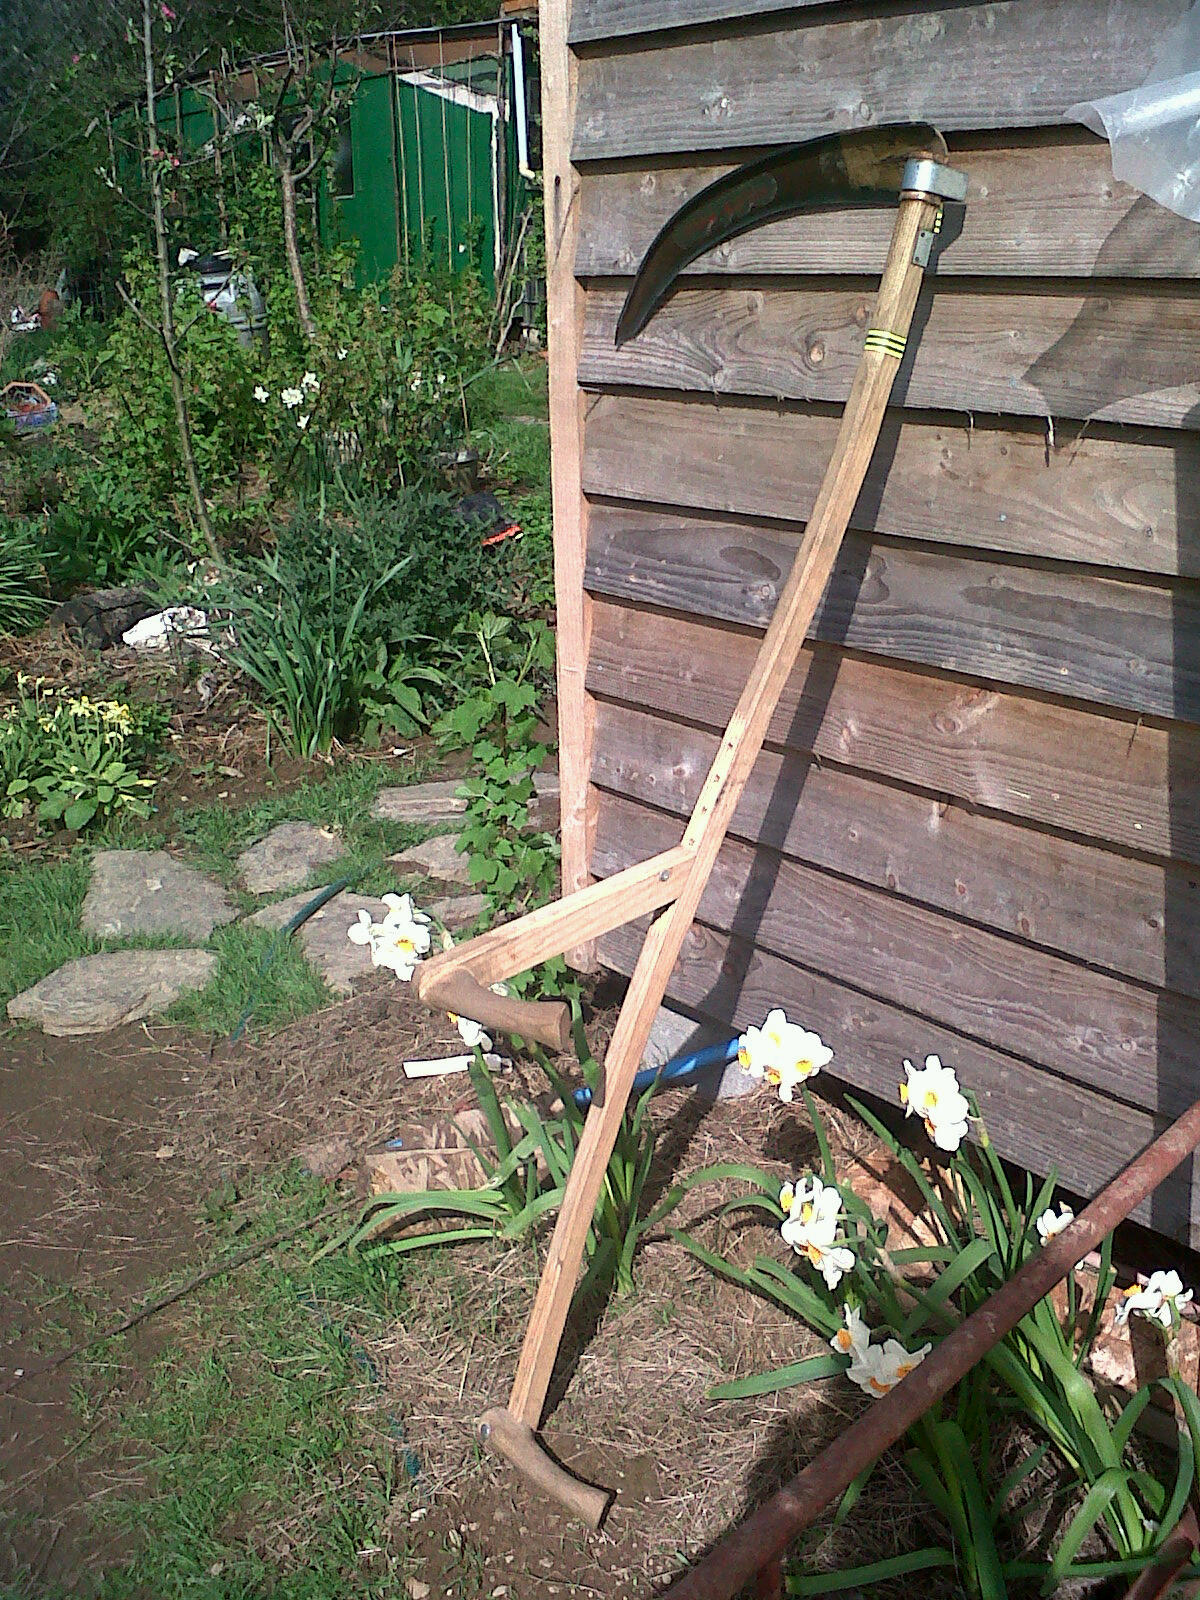 Trimming Scythe - short snath with long handled lower grip to enable the user to mow a narrow swath